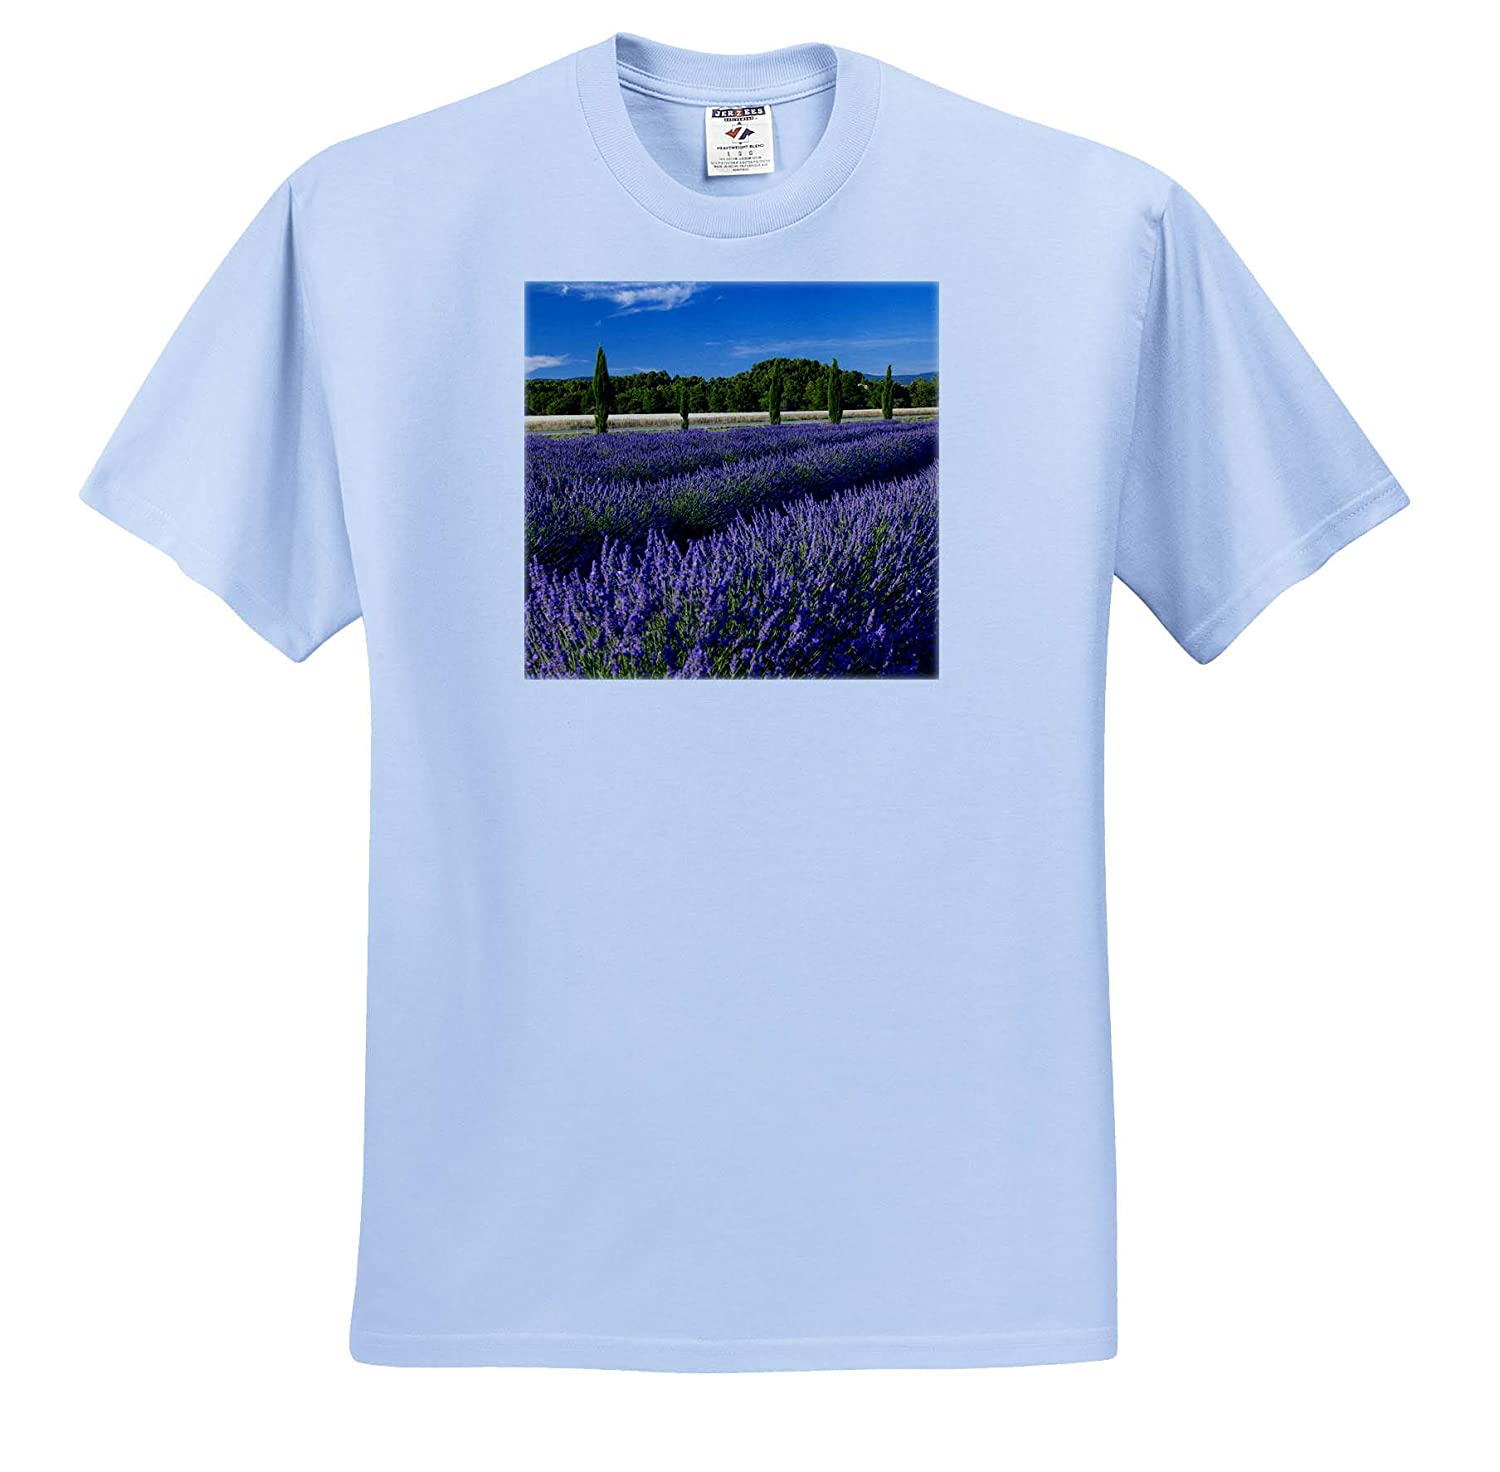 3dRose Danita Delimont ts/_313107 Adult T-Shirt XL Provence Provence France Rows of Lavender